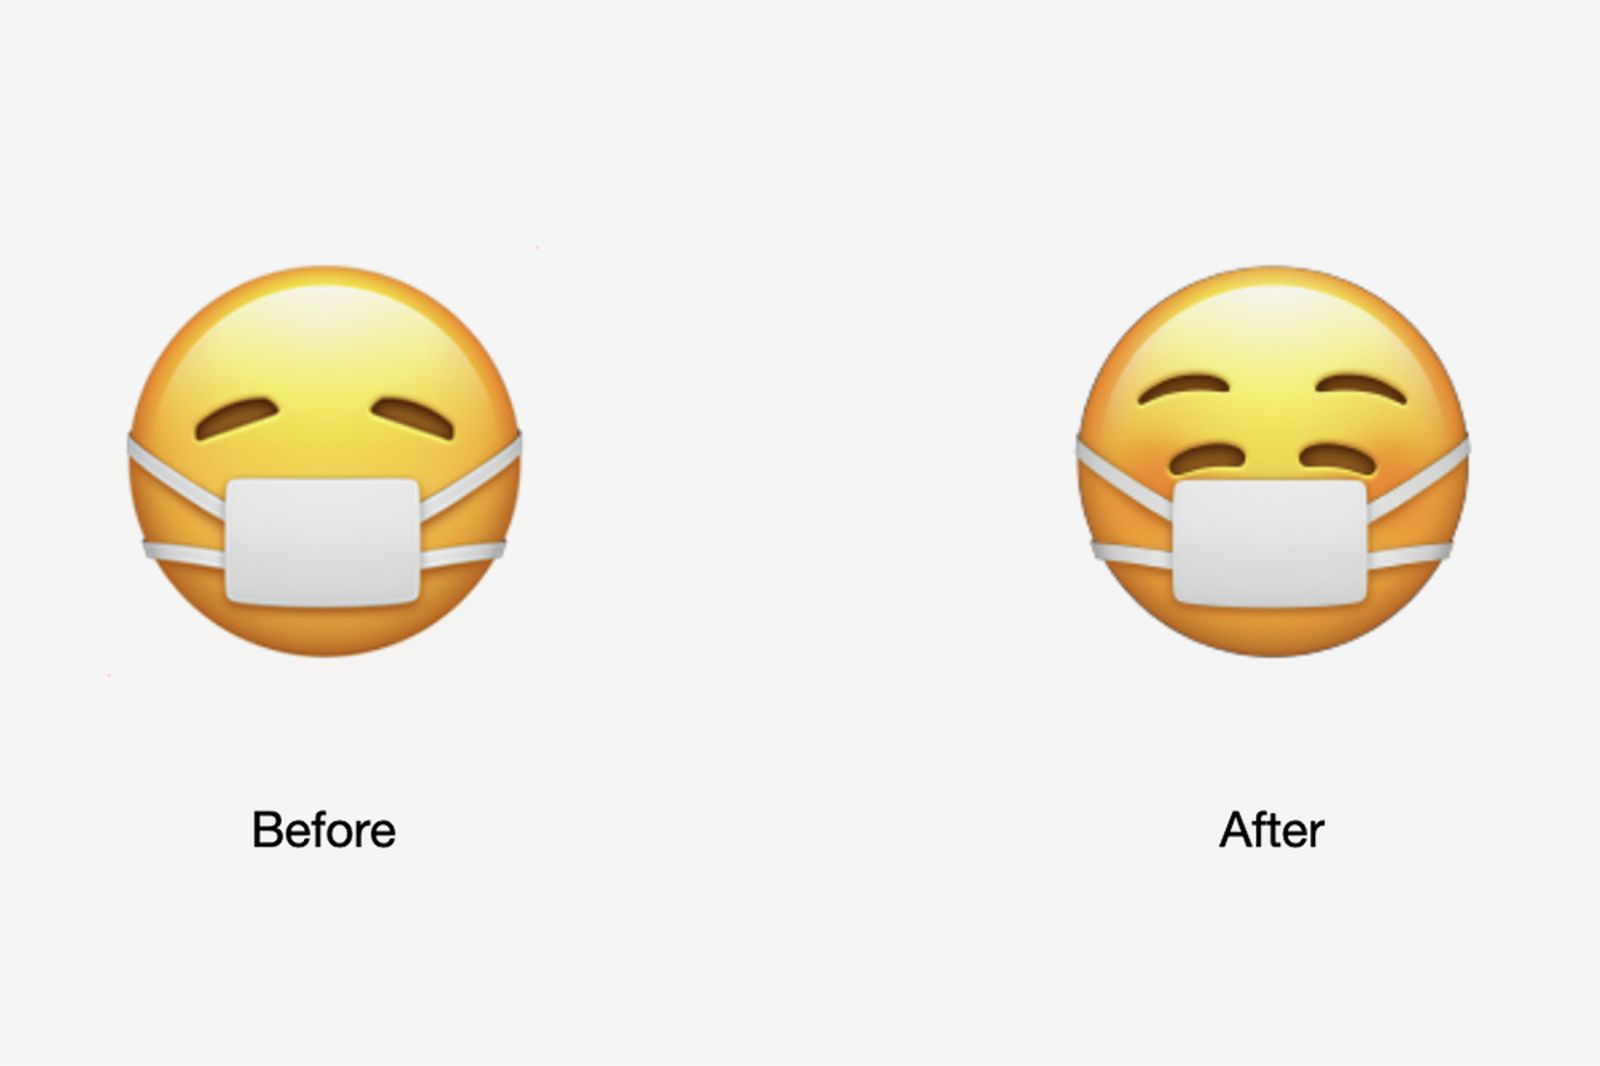 Apple Just Unveiled The Most 2020 Emoji Yet